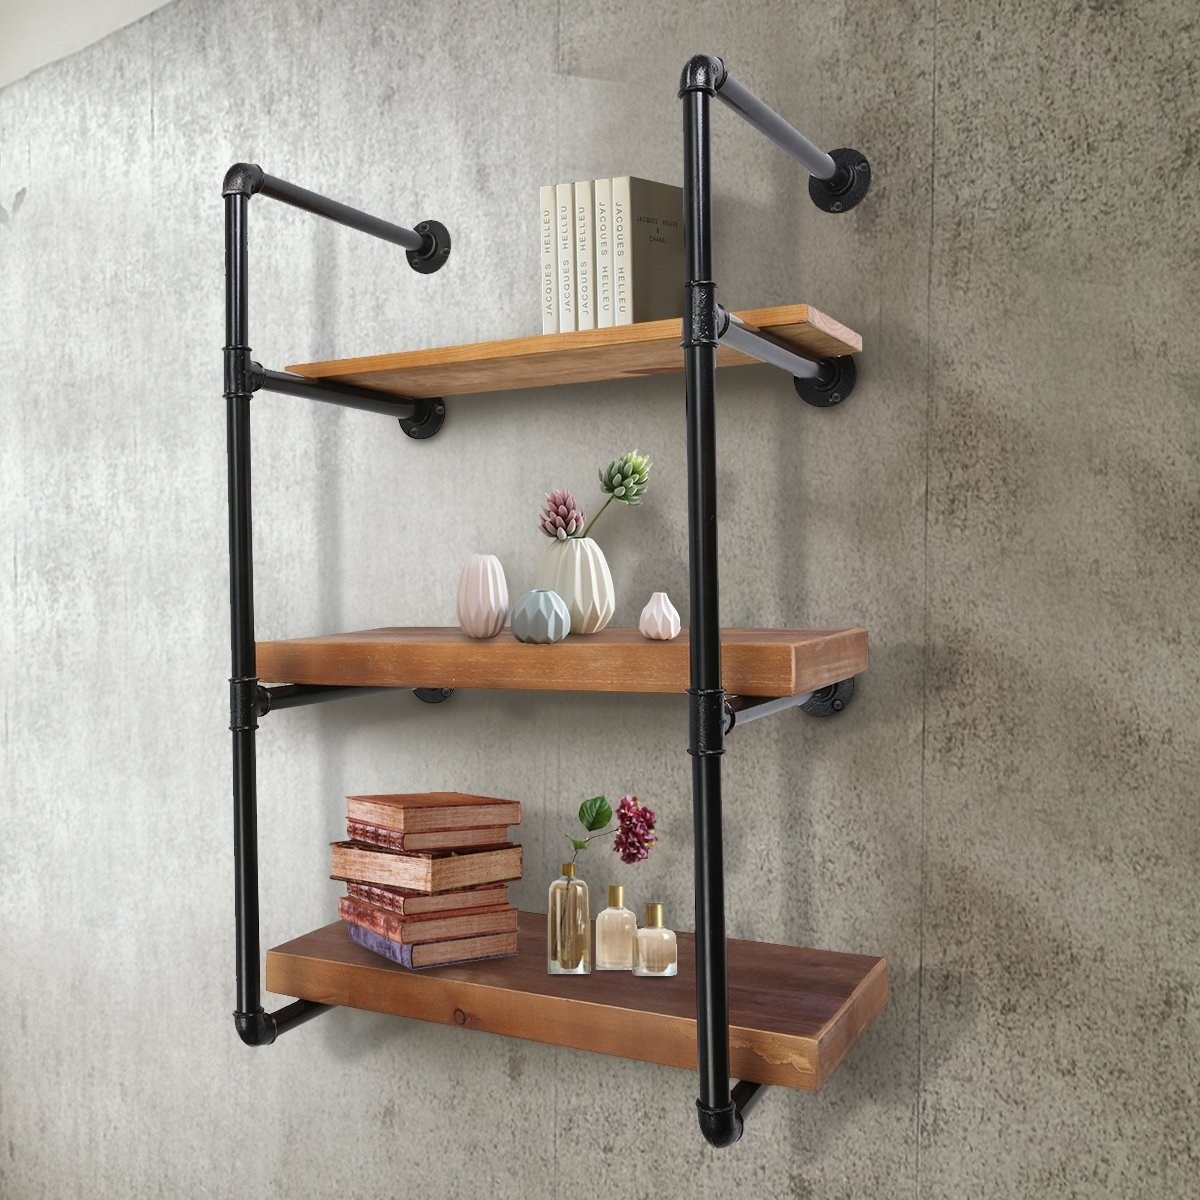 jeteven wall mount industrial iron pipe shelf brackets floating tiers diy storage shelving bookshelf holder without wood plank gap between and kitchen island countertop corner